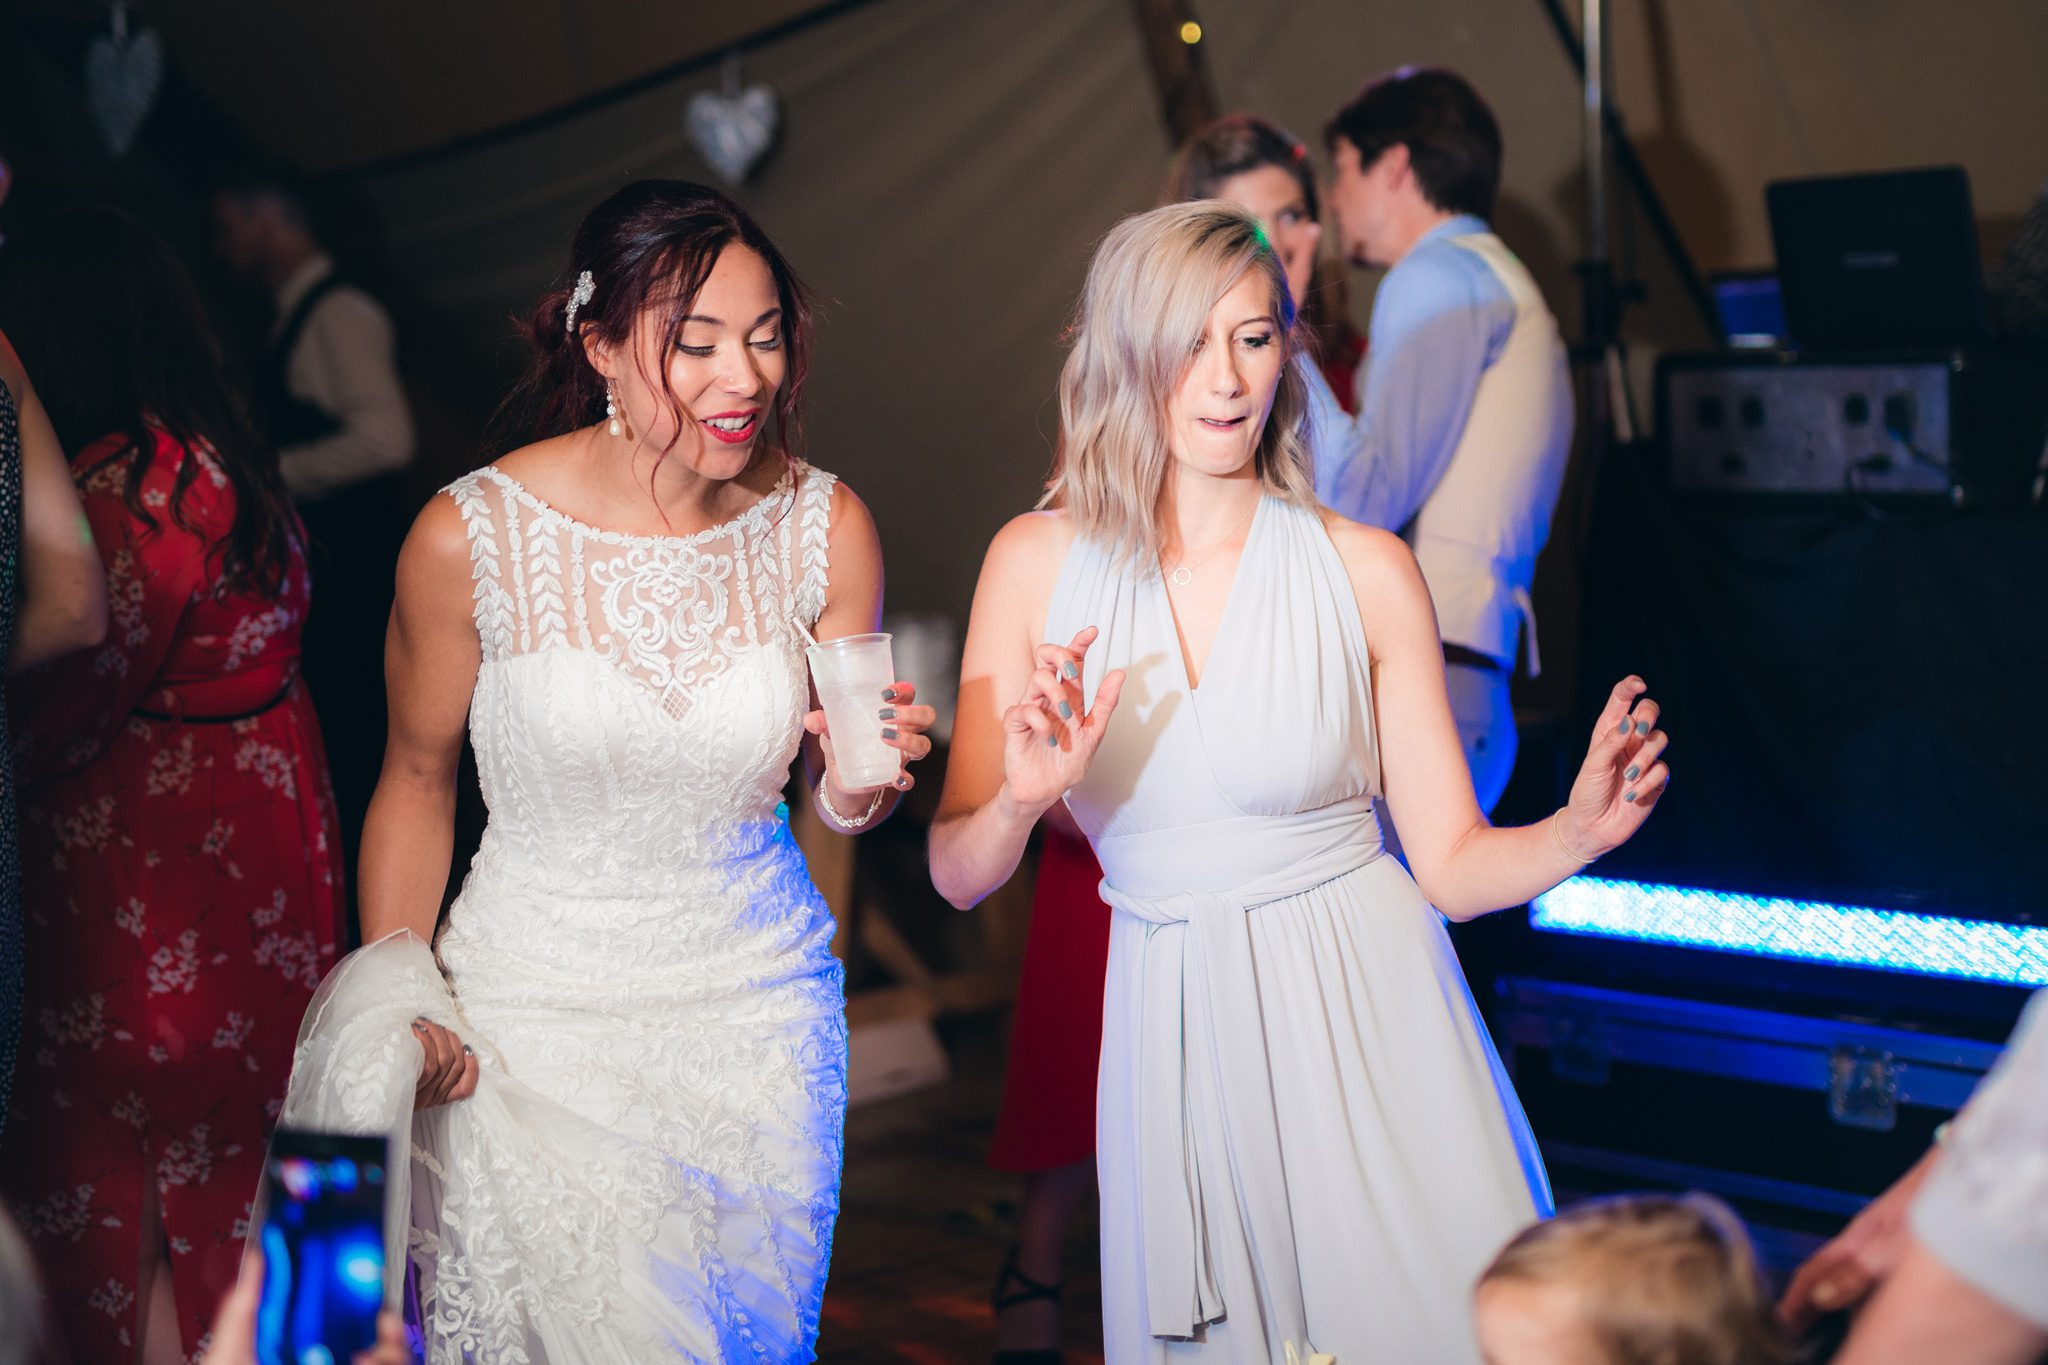 The bride and her bridesmaid dancing on the dance floor at a tipi wedding